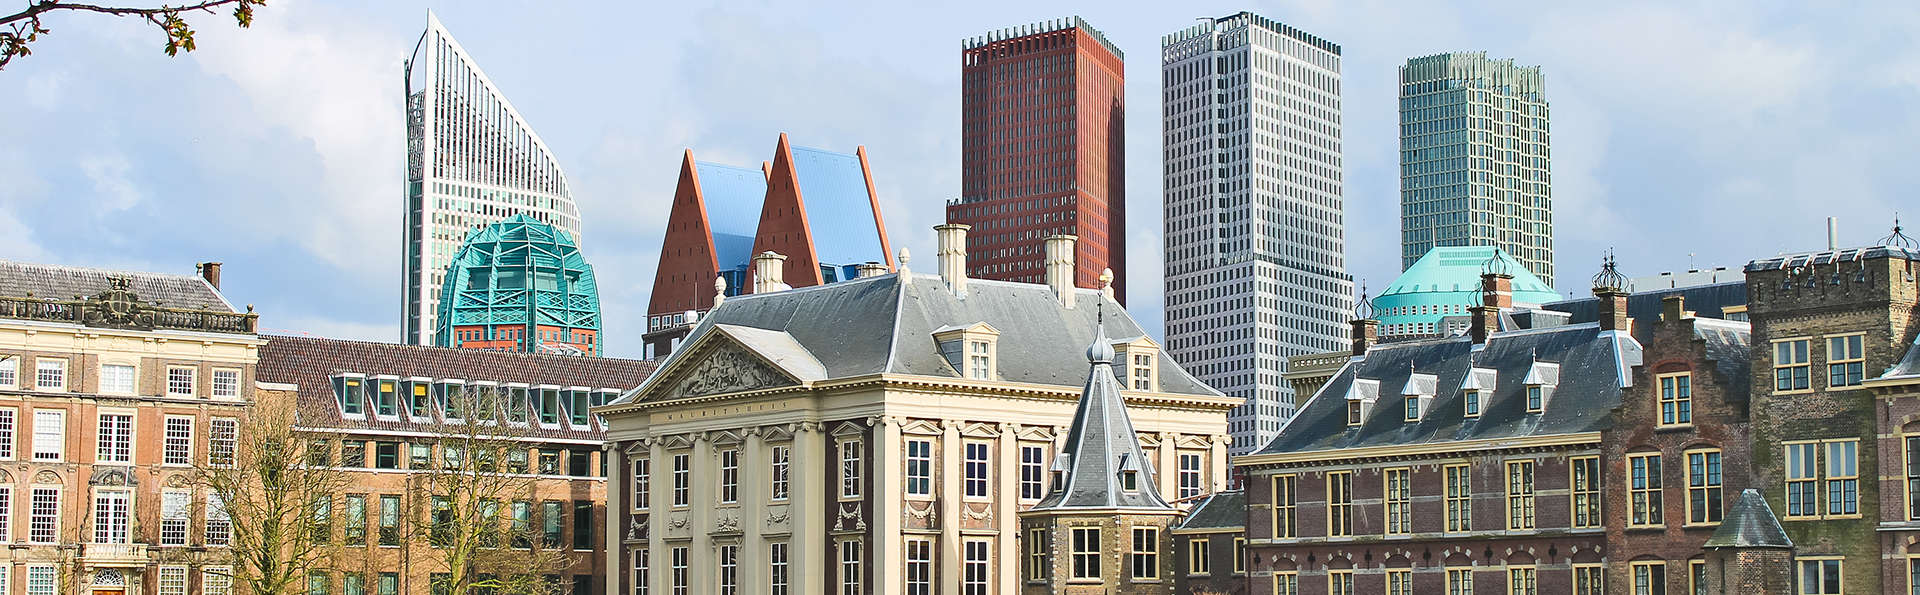 Hotel Des Indes - Edit_DenHaag2.jpg